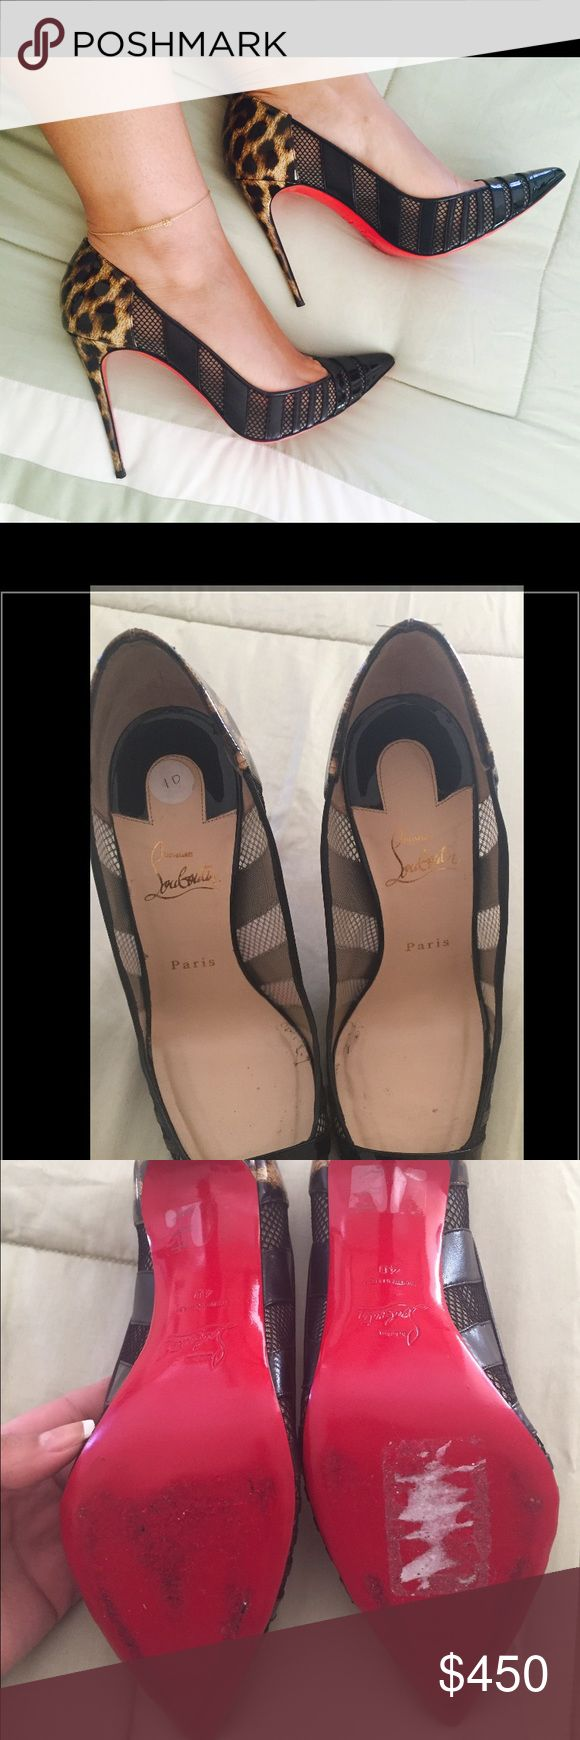 """Christian Louboutin Bandy Pumps size 40 Authentic! Got these beauties from a fellow posher, who bought them from a high end consignment shop. Unfortunately, they are too big for me so i need to let them go to someone who will actually wear them 😫. Self-covered heel, 4"""" (100mm) Size EU 40 which can fit a 9 or 9.5 US. Priced for quick sale & free authentication. Small nick on the bottom of the right heel. Minor wear on the insole and on the bottom of soles of the heels. Christian Louboutin…"""